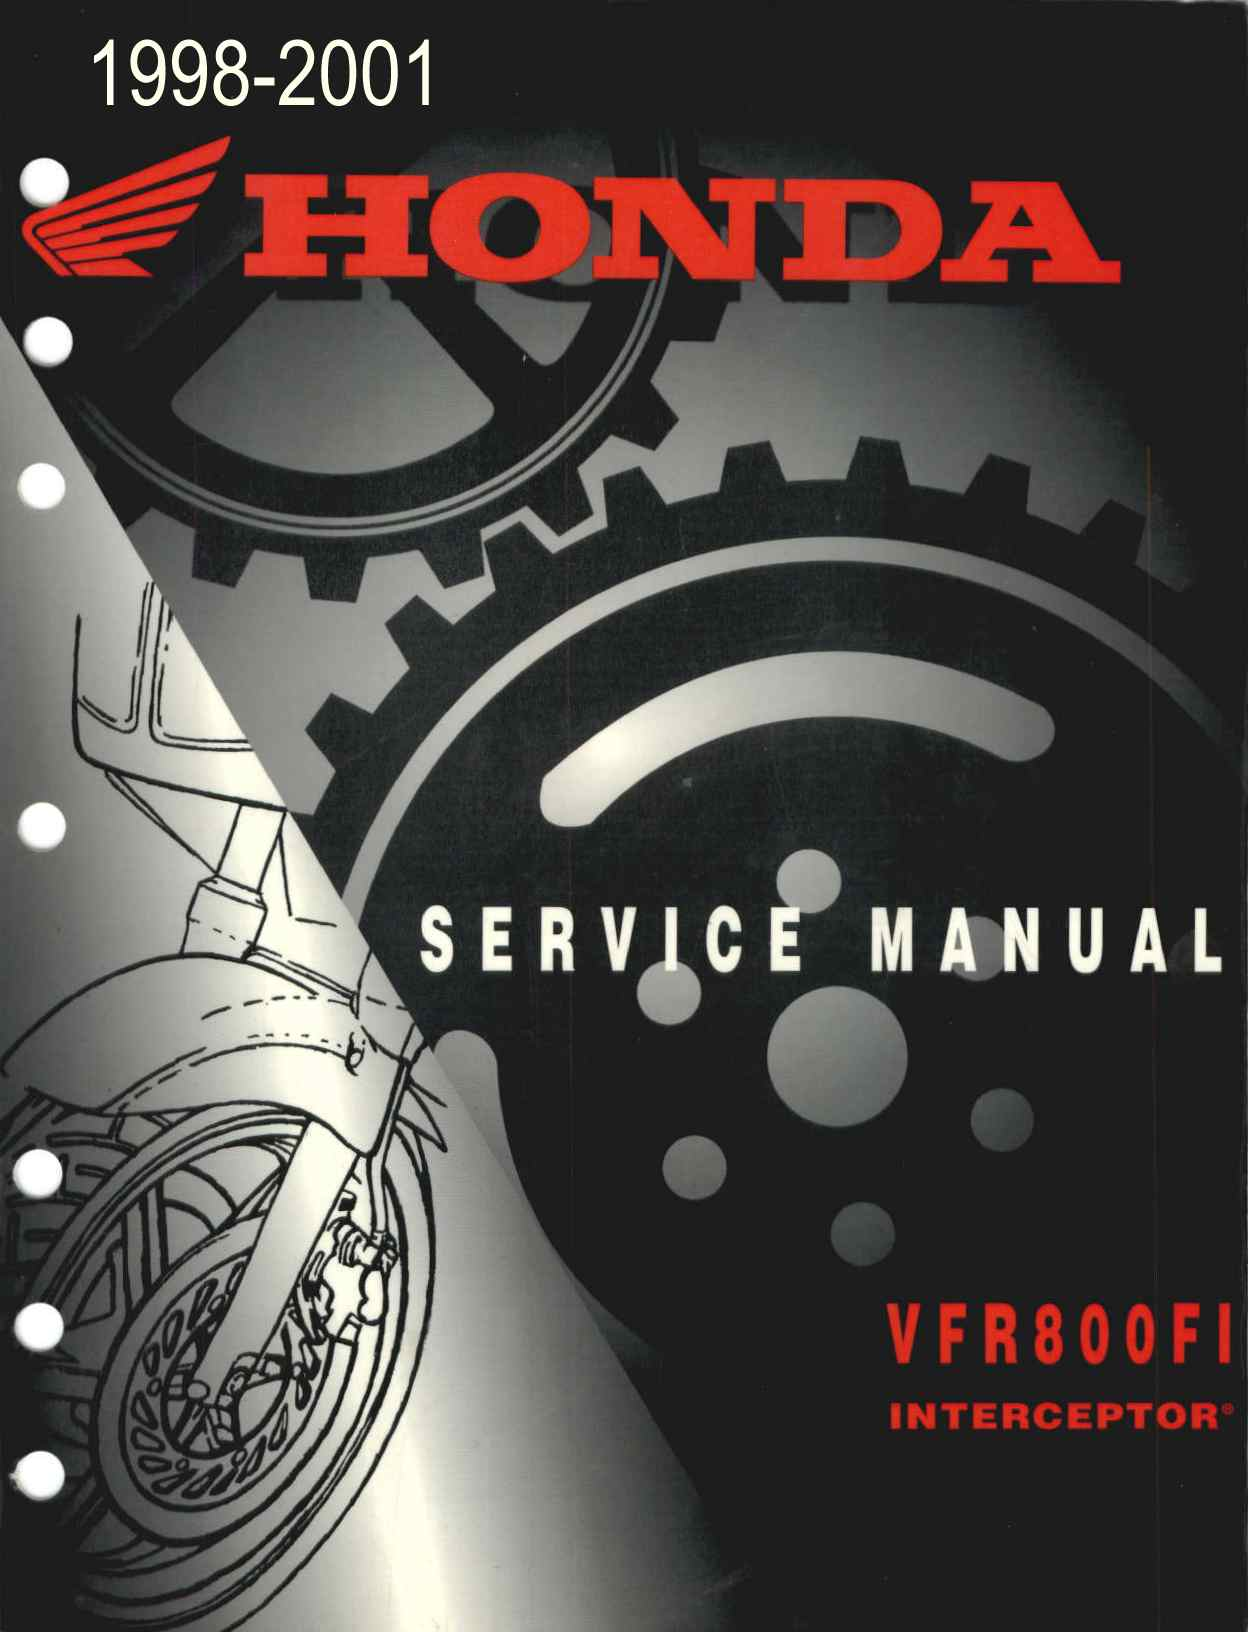 Workshop manual for Honda VFR800FI Interceptor (1998-2001)